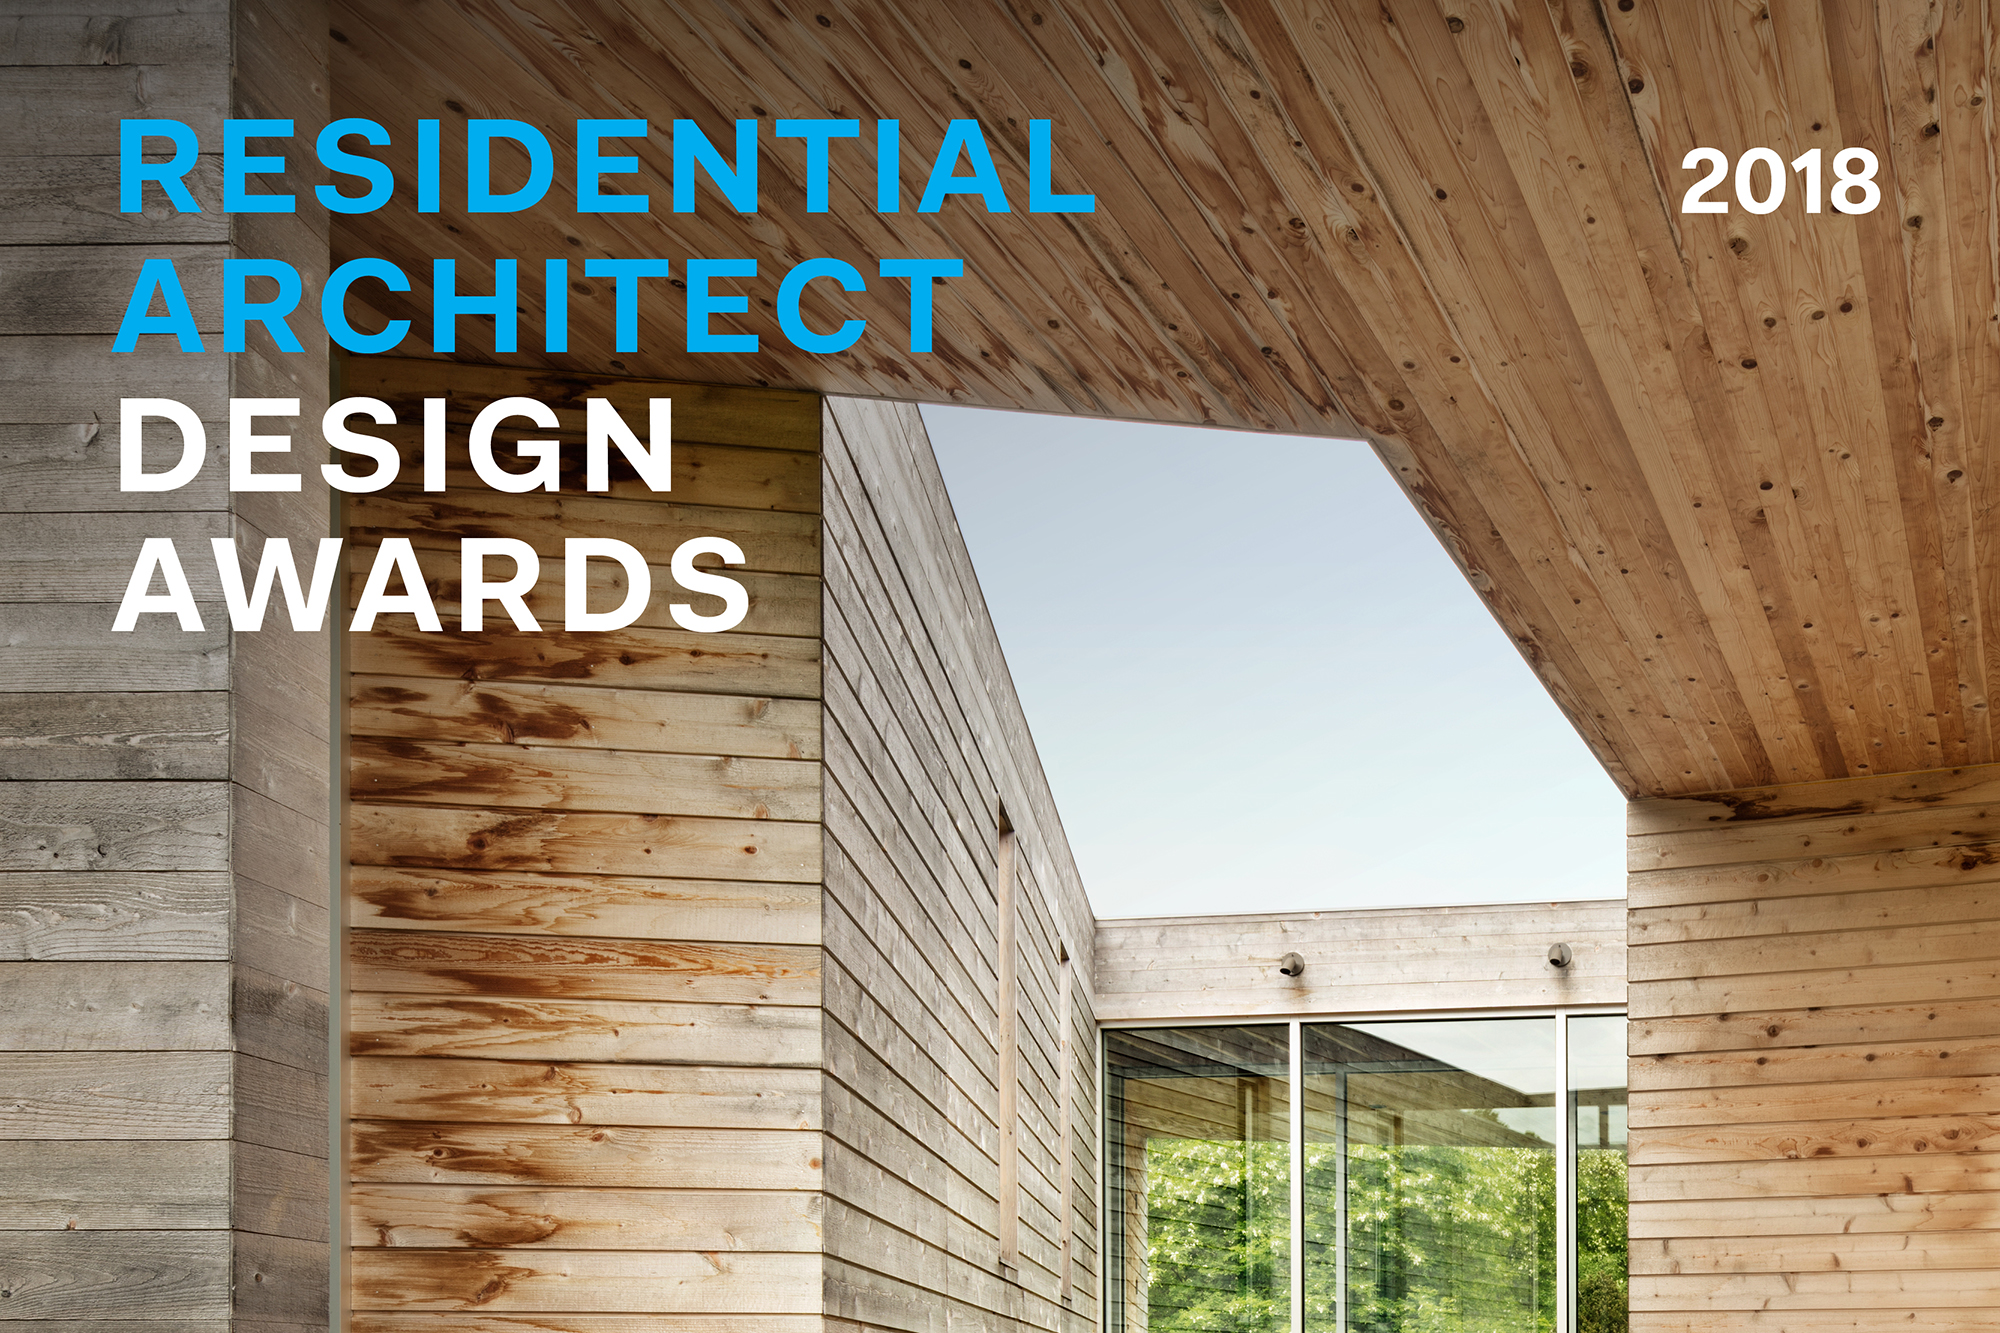 The winners of the 2018 residential architect design awards